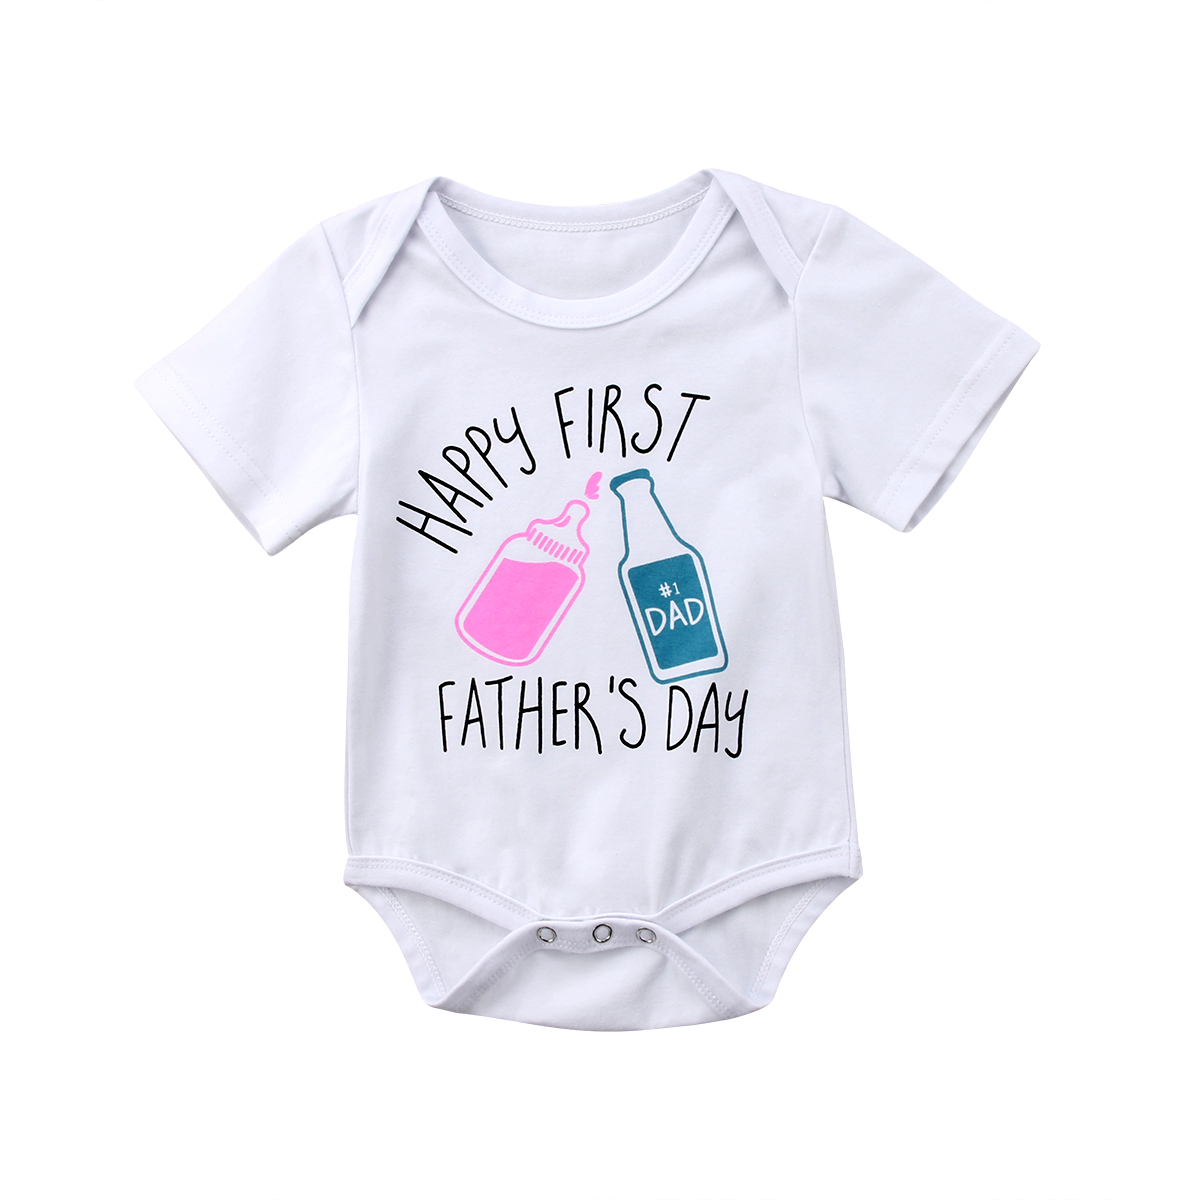 Newborn Baby Girls Boys Short Sleeve Bodysuits Father Day Bodysuits Jumpsuit Outfits Clothes